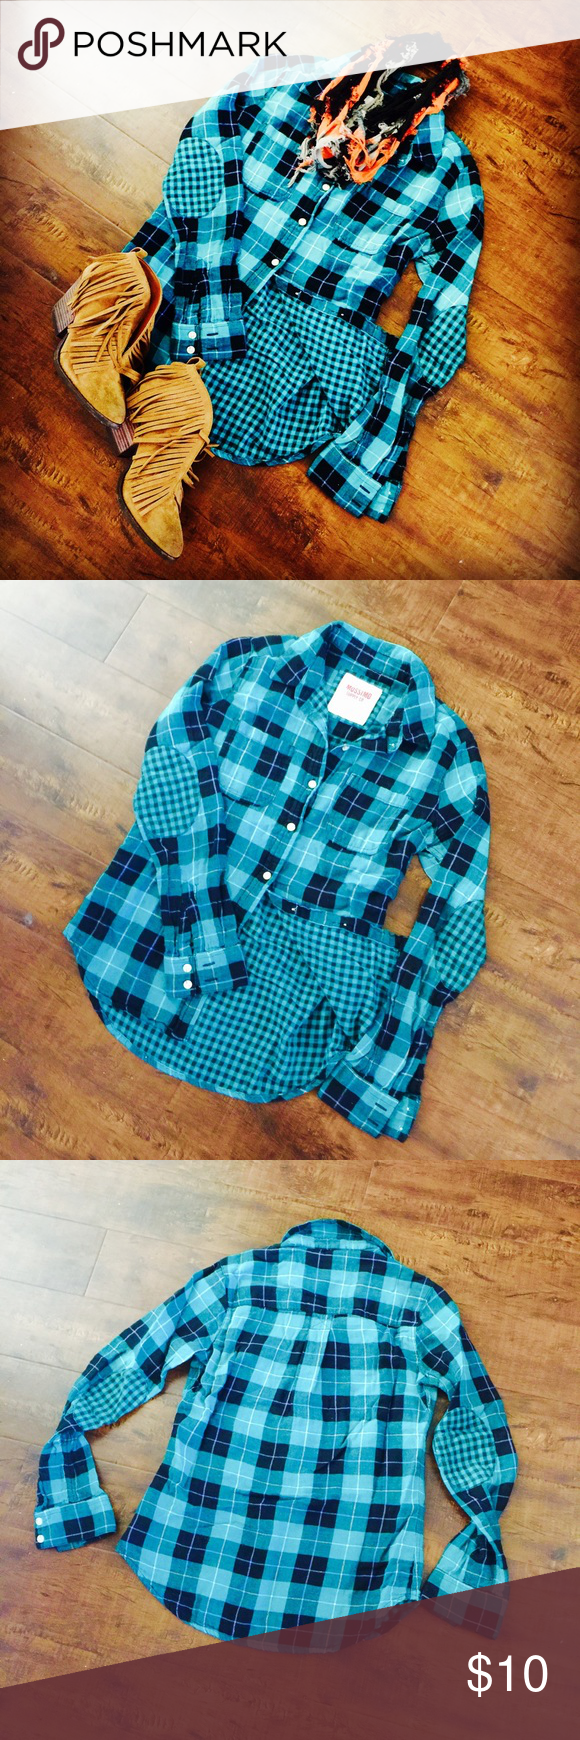 **LIKE NEW* TEAL AND BLACK HIPSTER PLAID SHIRT** This is a Turquoise and black plaid shirt by MOSSIMO with different patterns on inside and elbow patches. Wear as a lightweight jacket or top. Size S/P Smoke-free home **serious offers please**    URBAN OUTFITTERS / ANTHROPOLOGIE / ZARA / H&M Mossimo Supply Co Tops Button Down Shirts